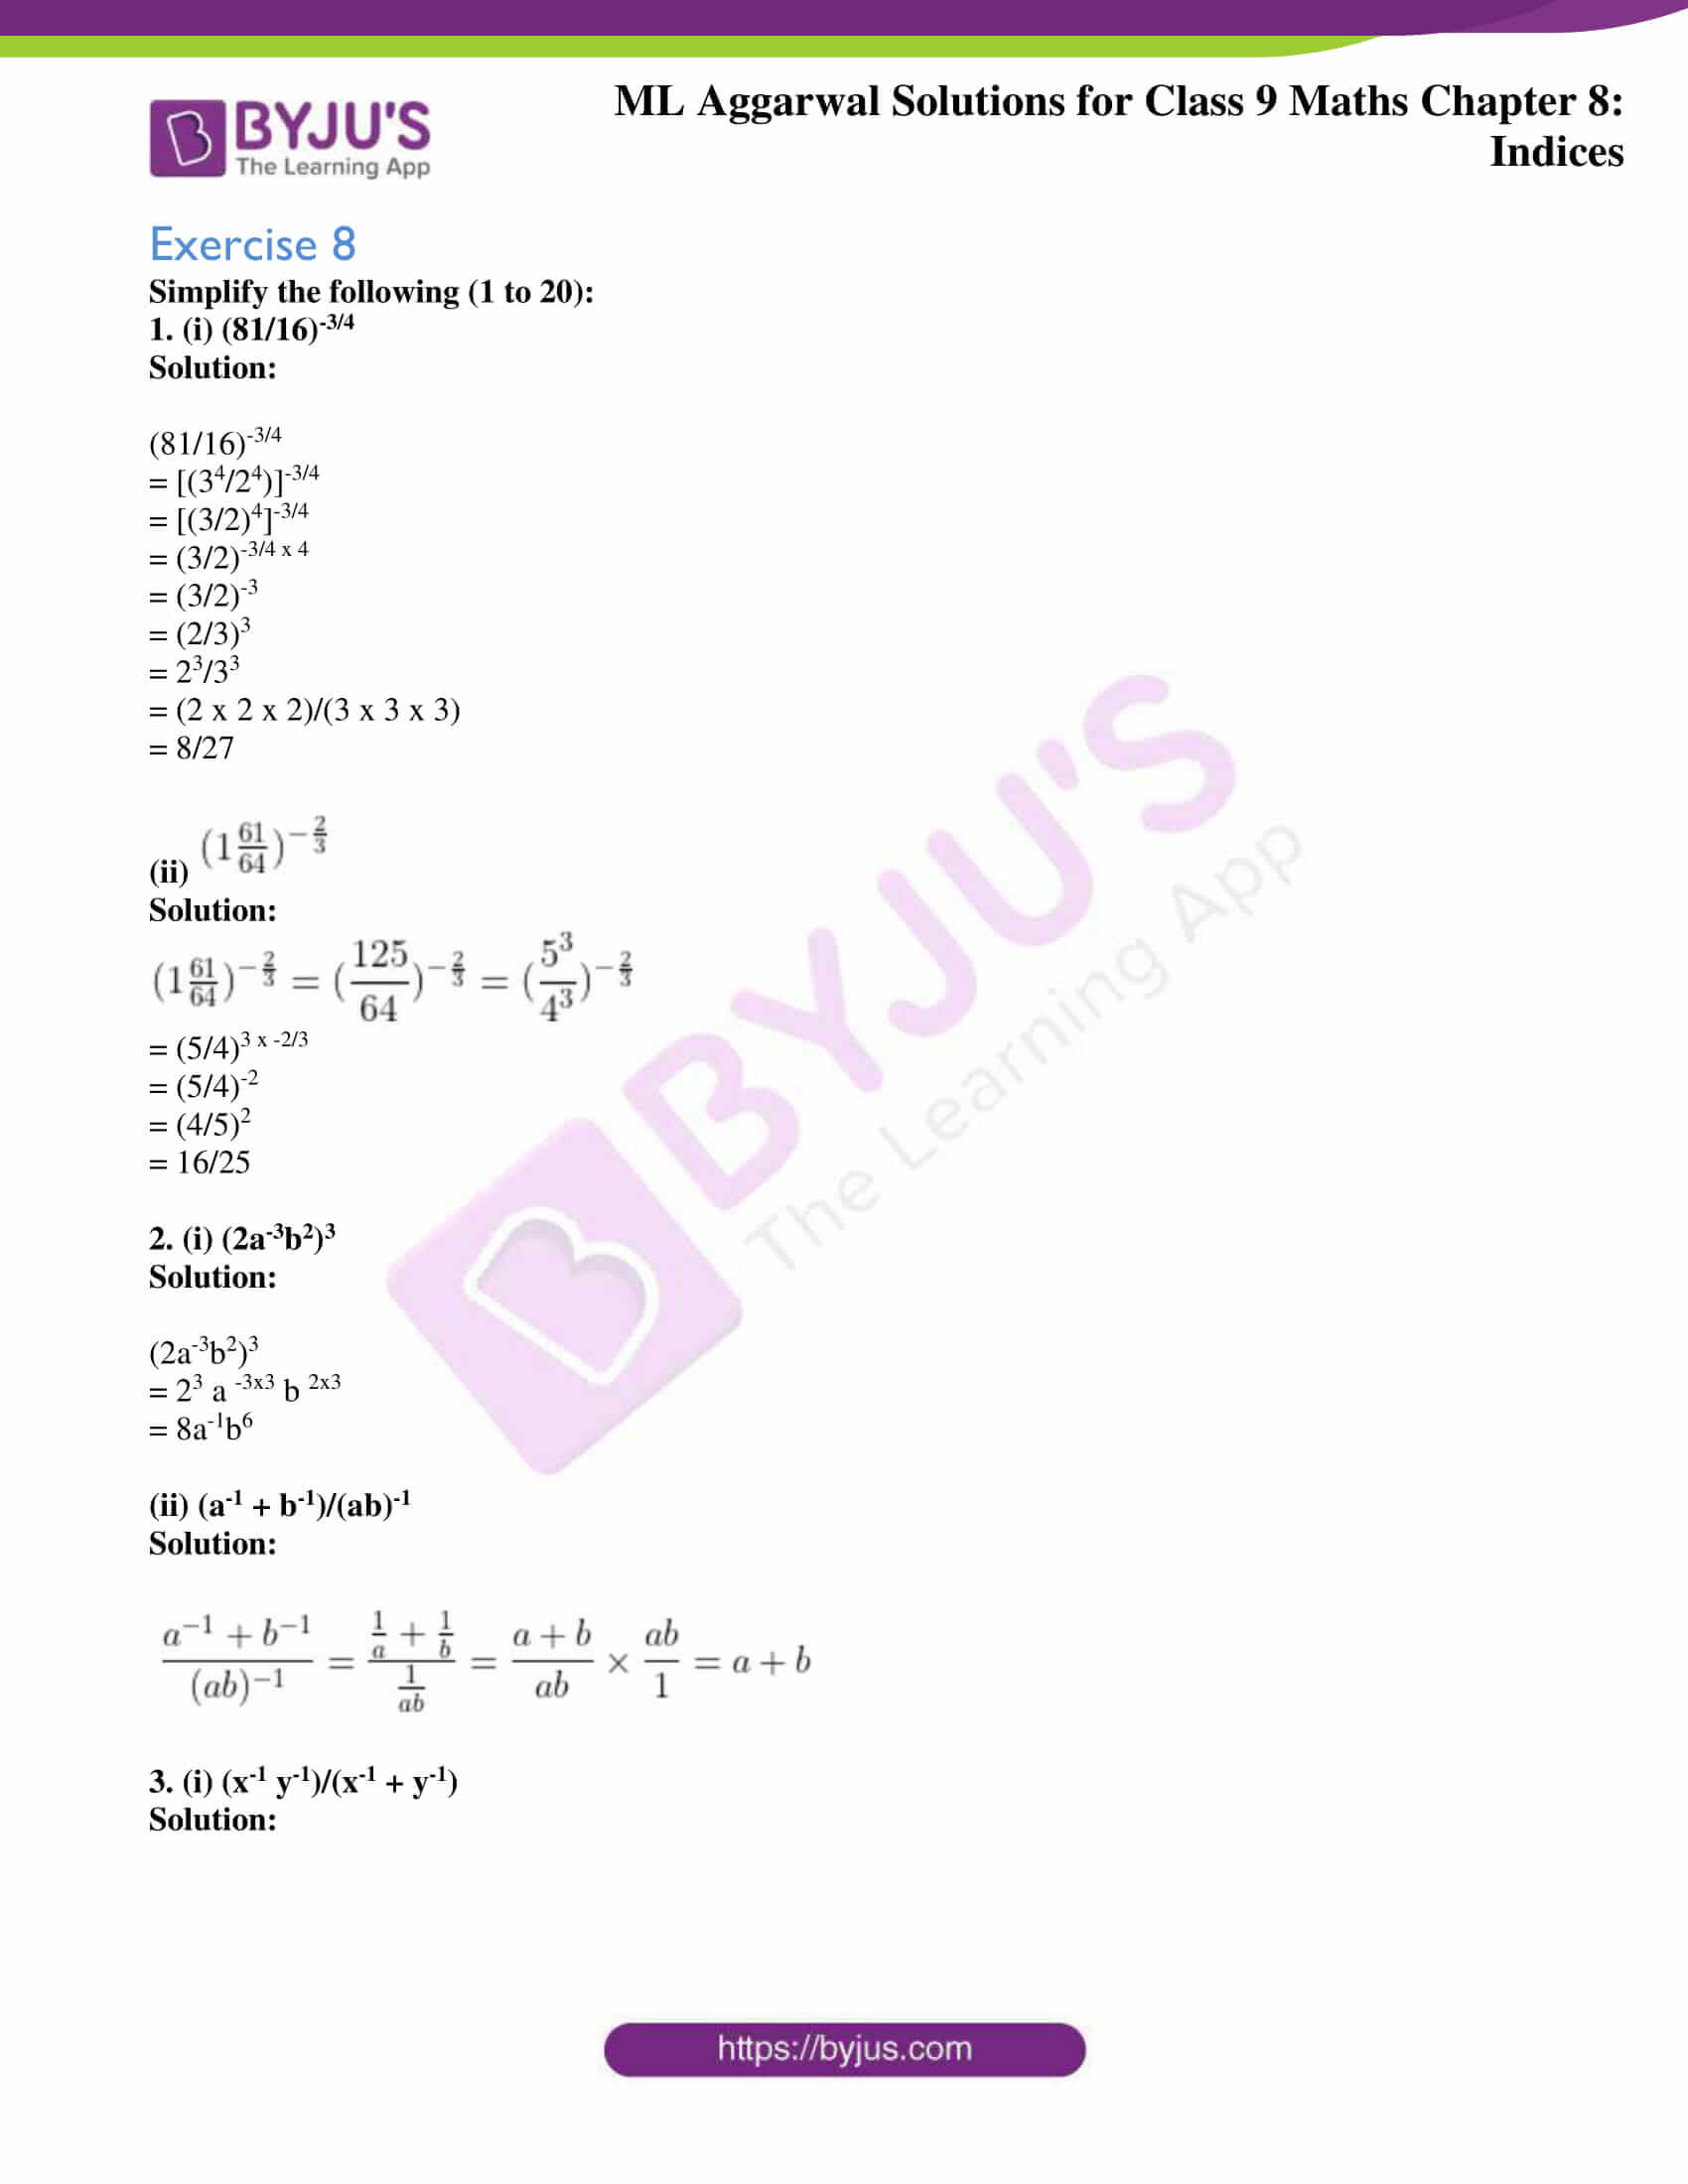 ml aggarwal solutions for class 9 maths chapter 8 01